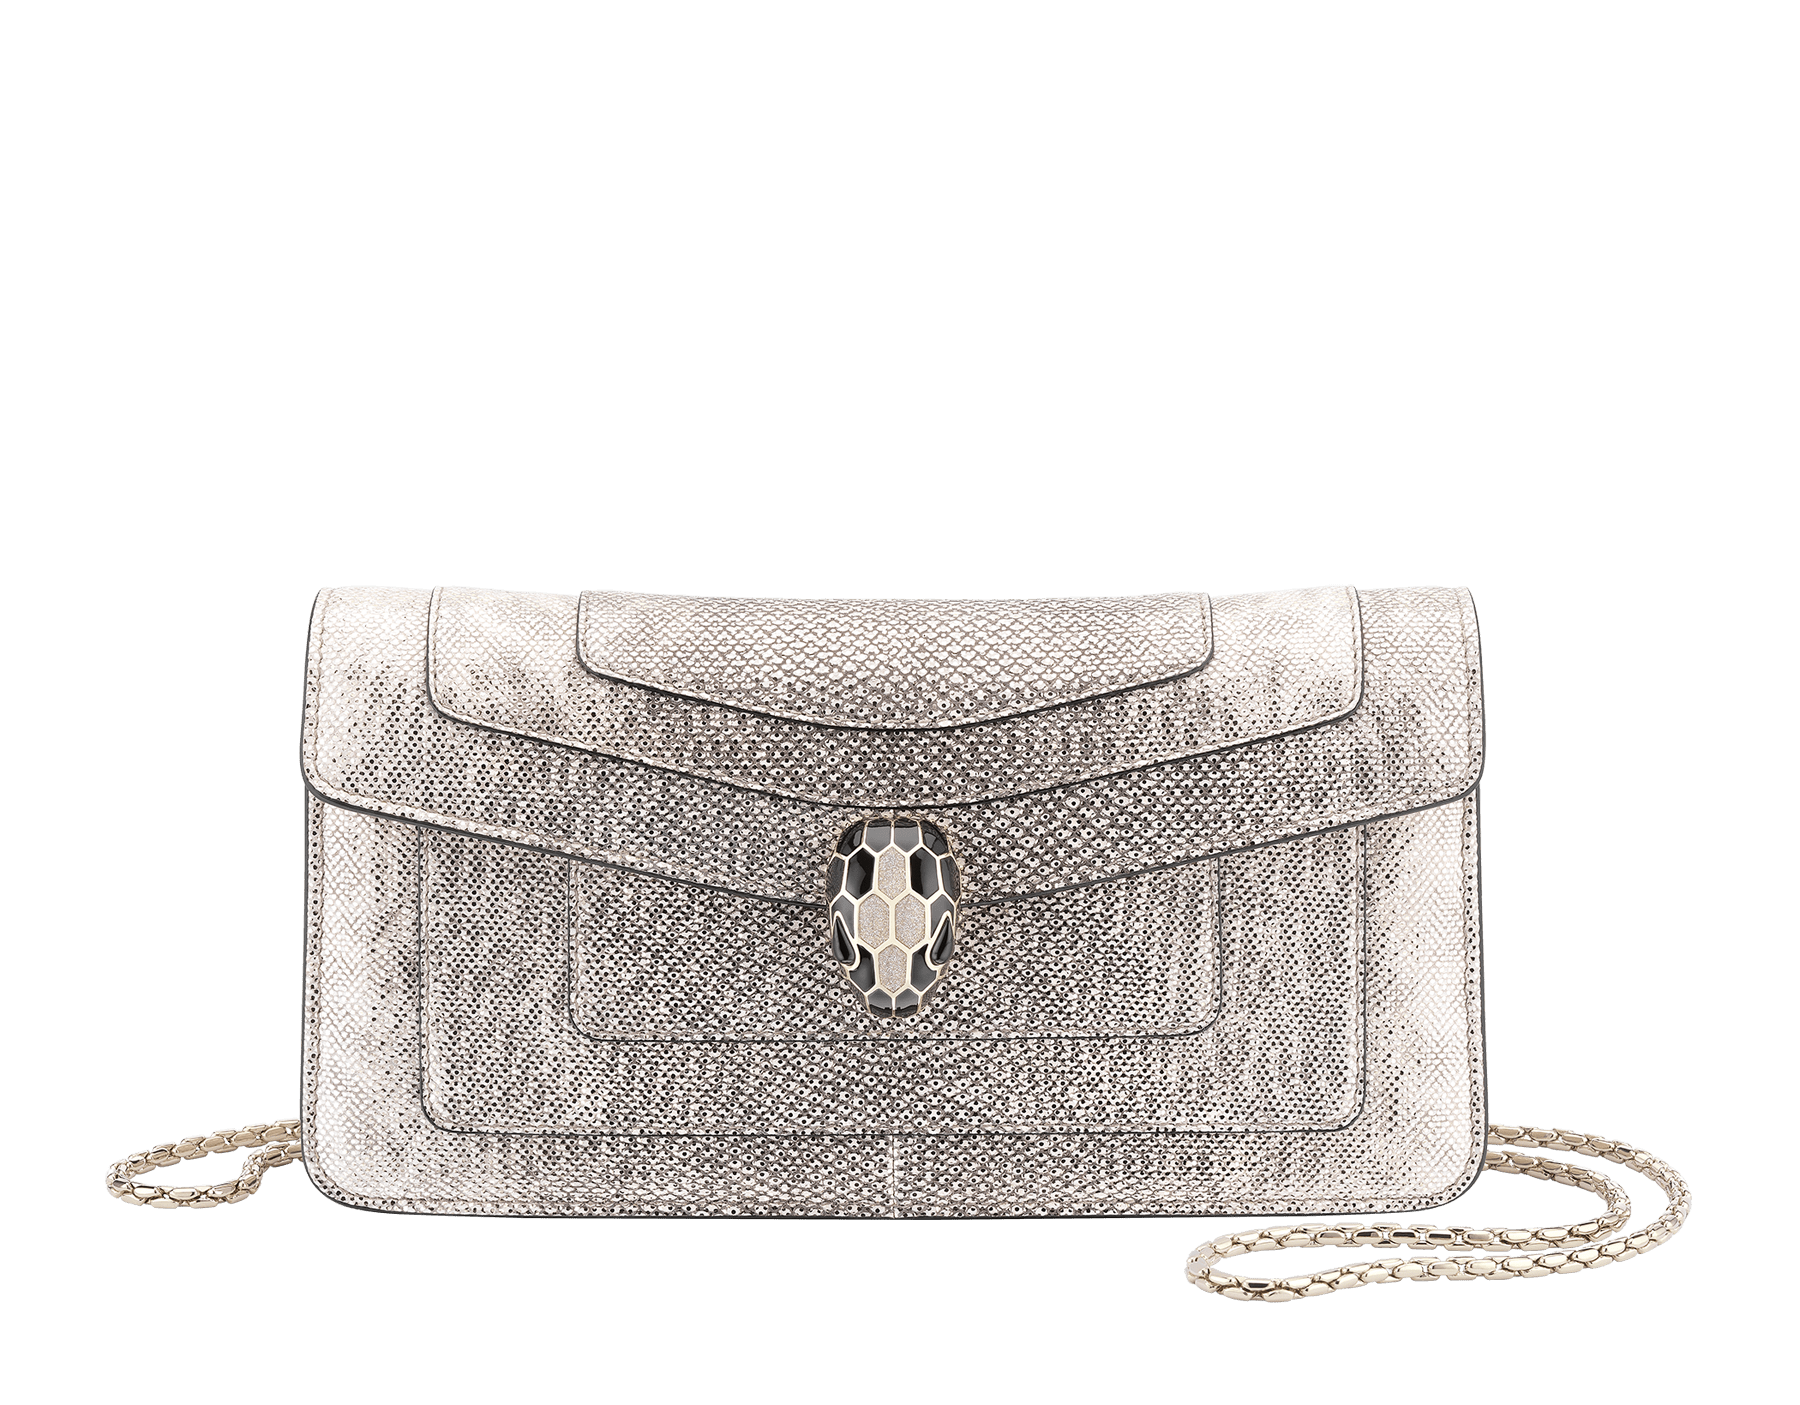 Serpenti Forever shoulder bag in milky opal metallic karung skin. Snakehead closure in light gold plated brass decorated with black and glitter milky opal enamel, and black onyx eyes. 287943 image 1